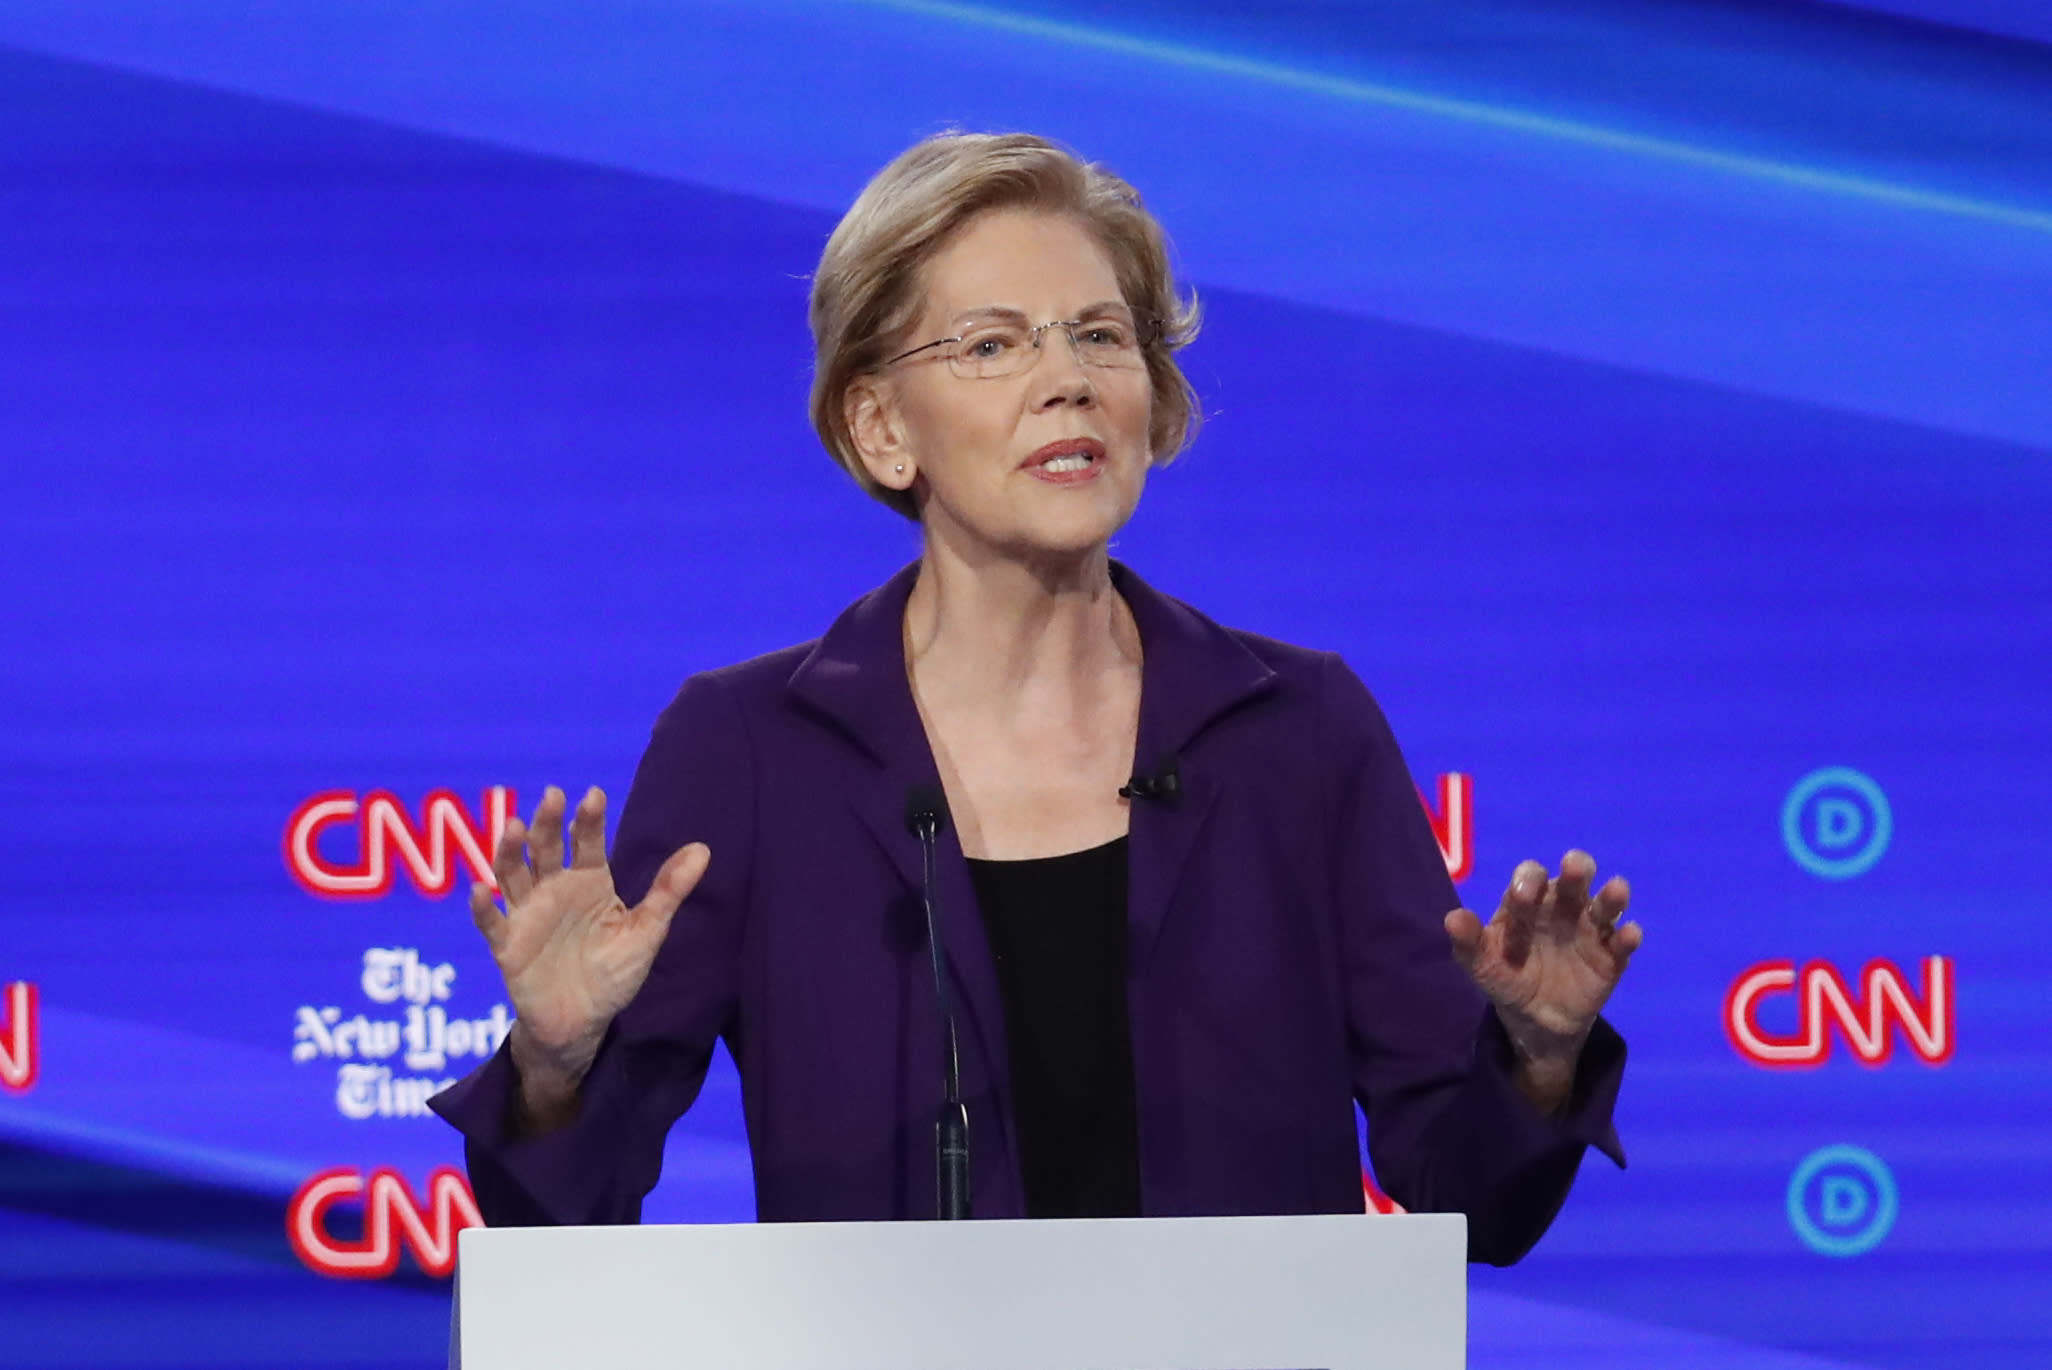 The best advice for investors who are scared of Elizabeth Warren